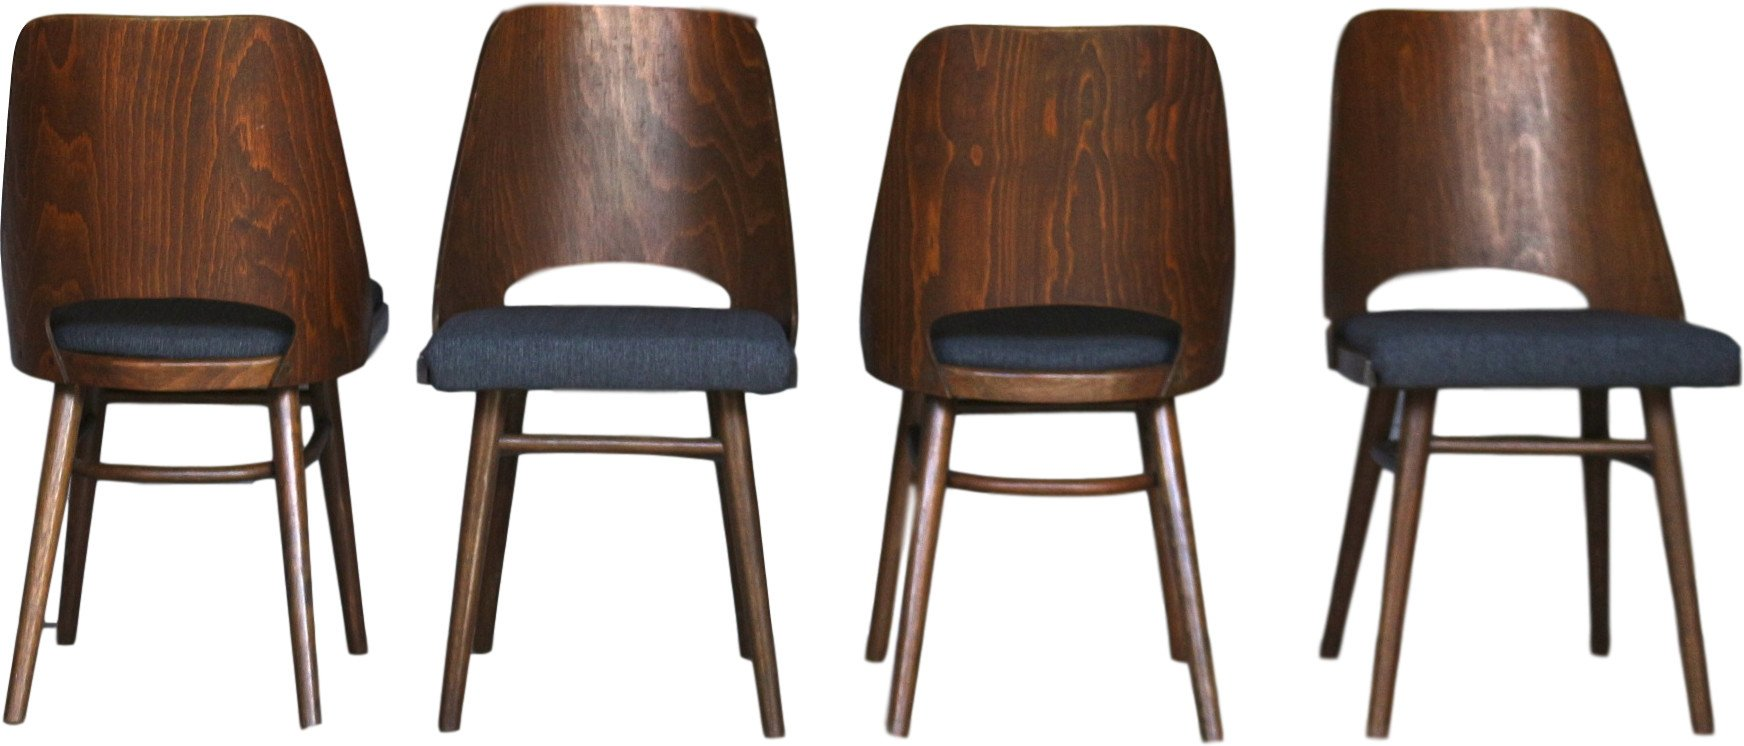 Set of Four Chairs, TON, Czechoslovakia, 1960s